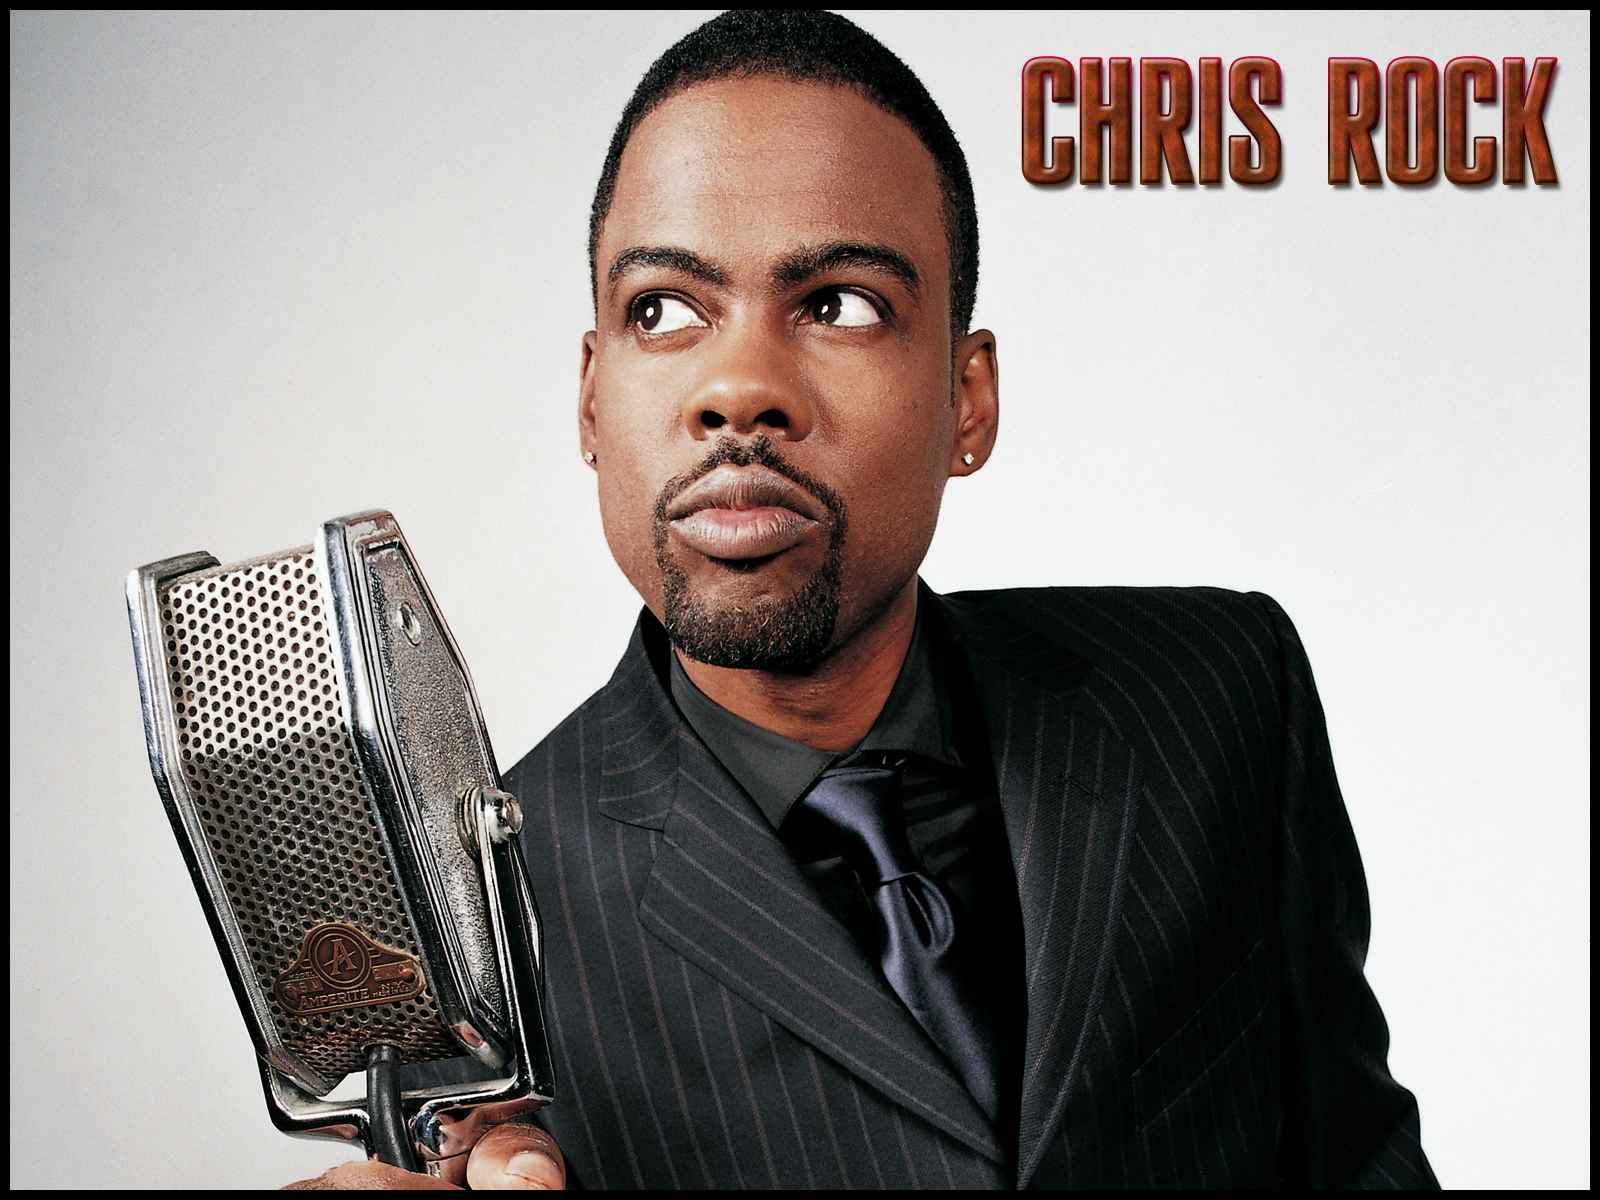 http://upbeaconstaff.files.wordpress.com/2011/03/chrisrock.jpg